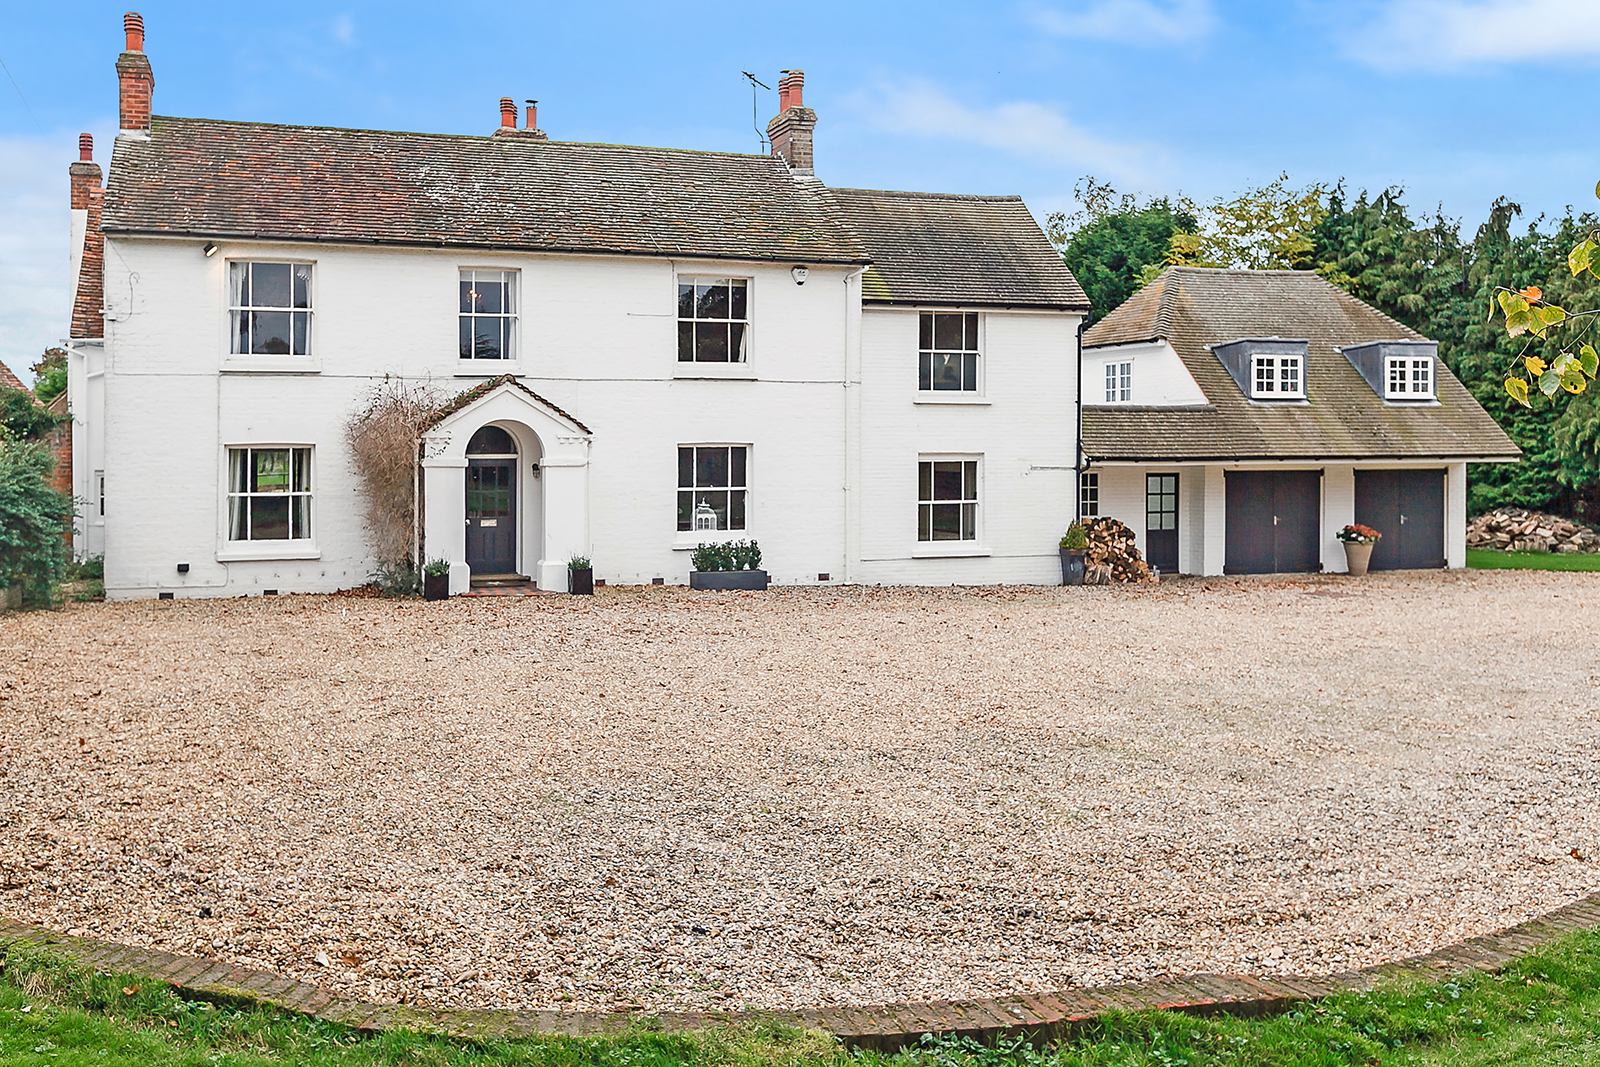 Property For Sale In Princes Risborough Buckinghamshire